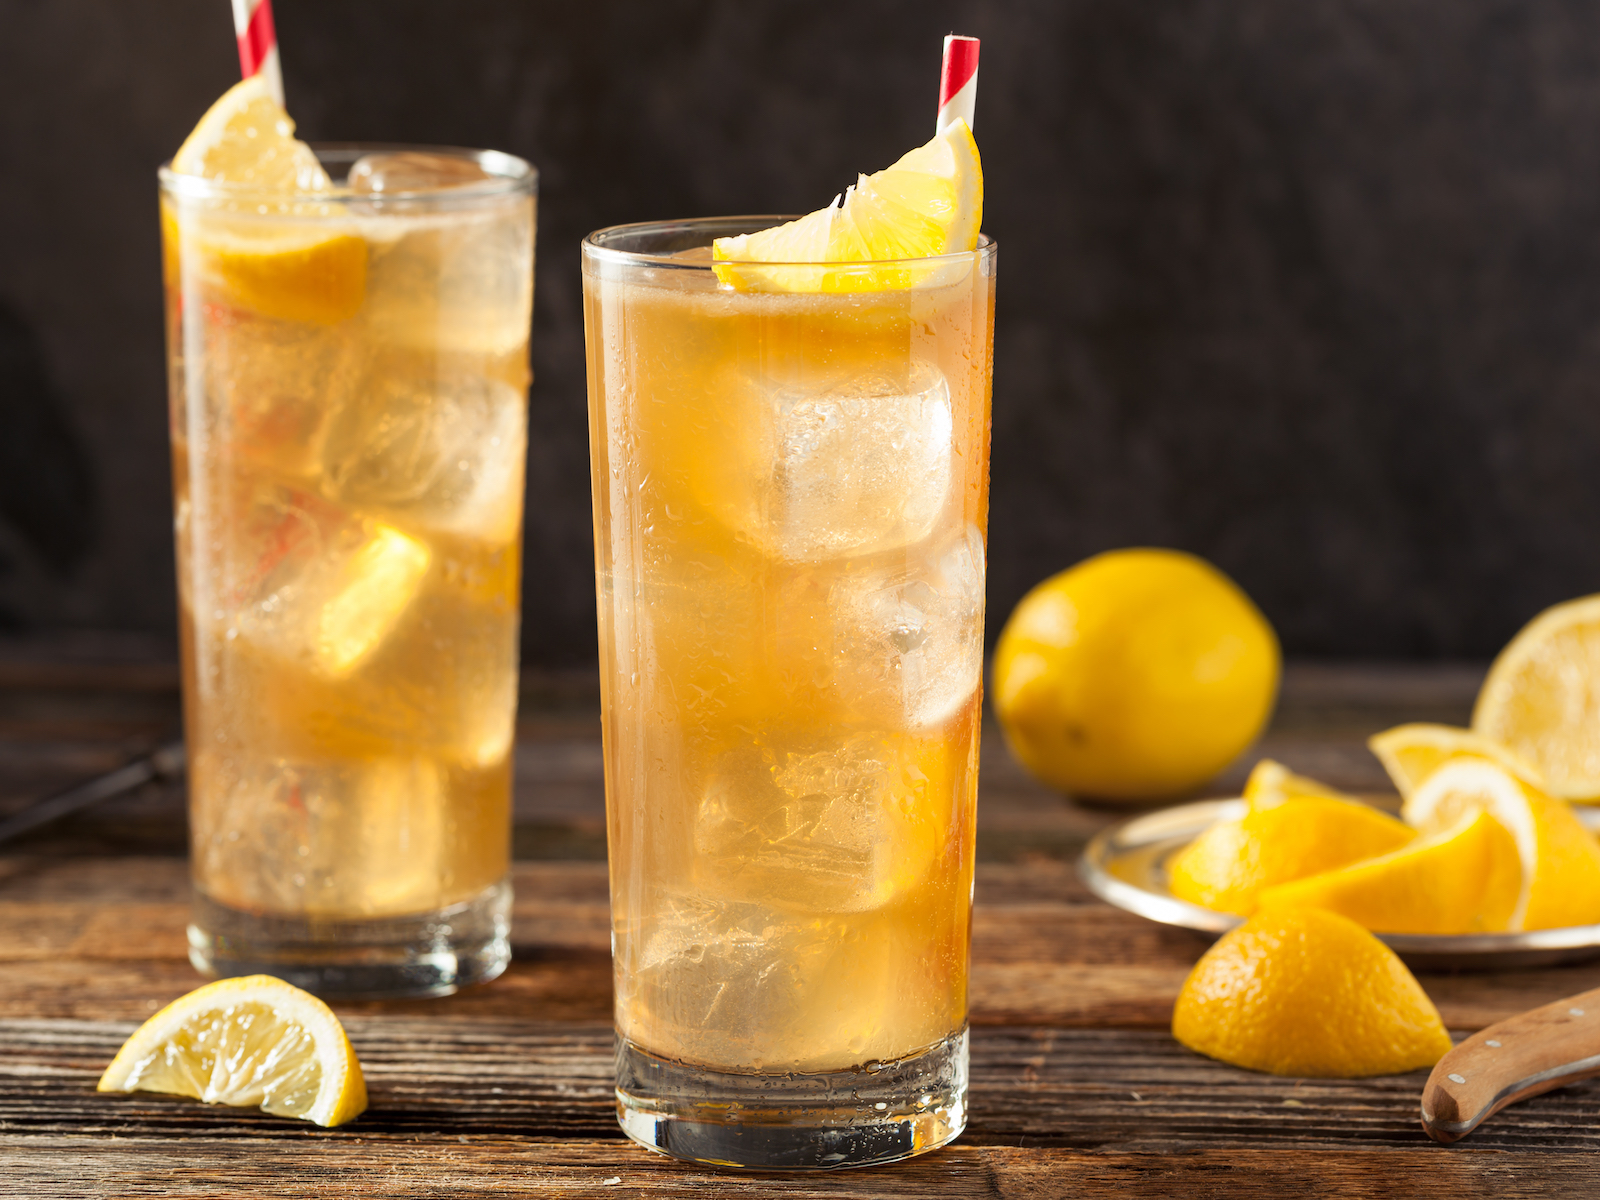 Long Island ice tea origins